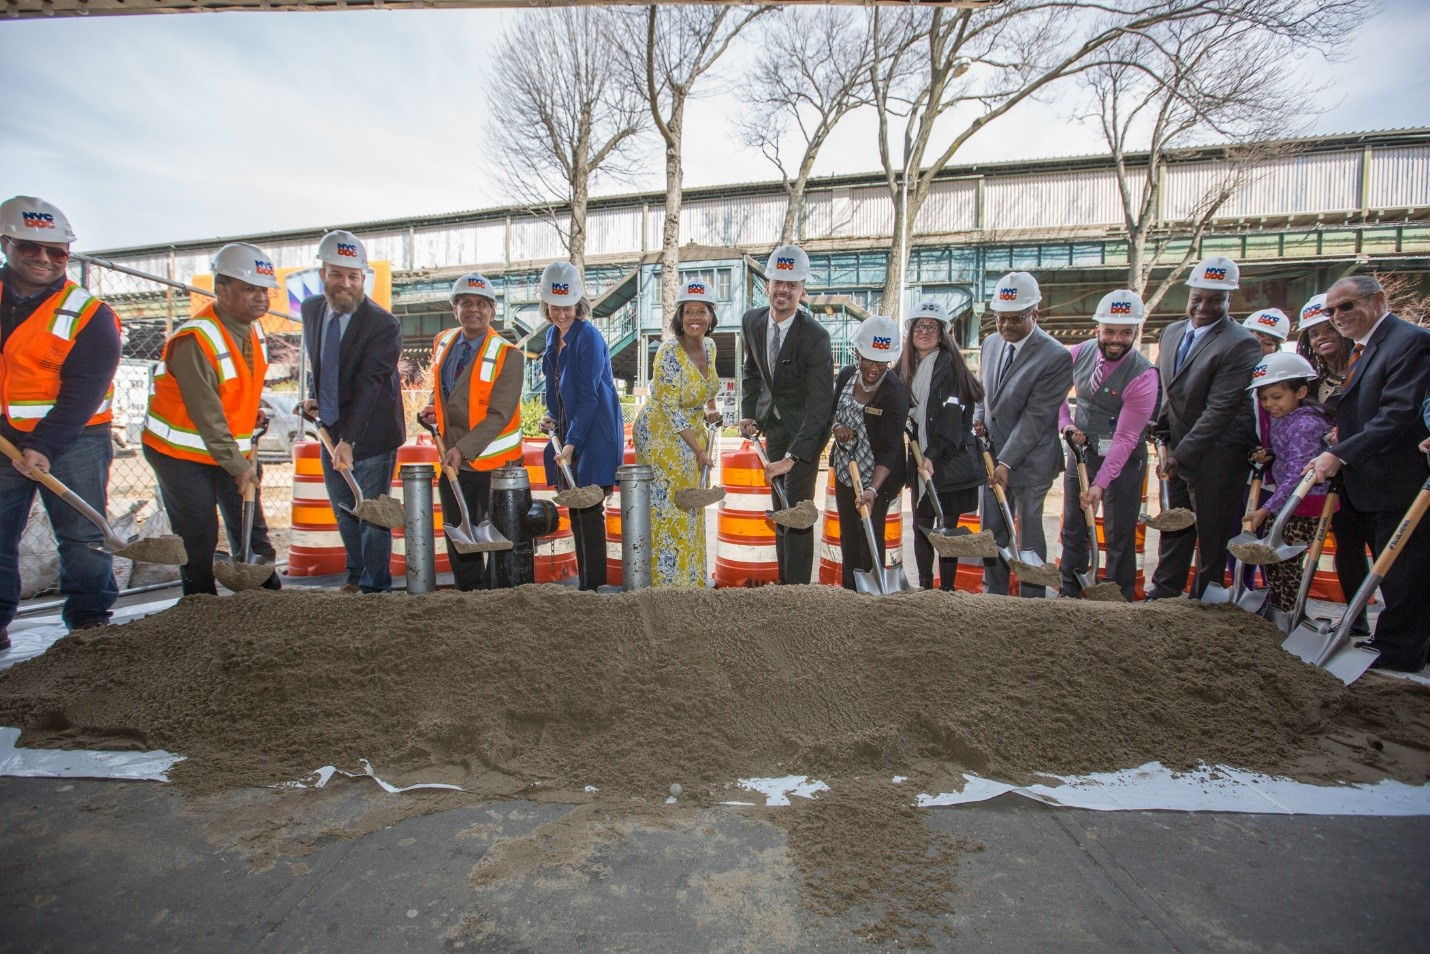 city officials joined for the Corona Plaza groundbreaking